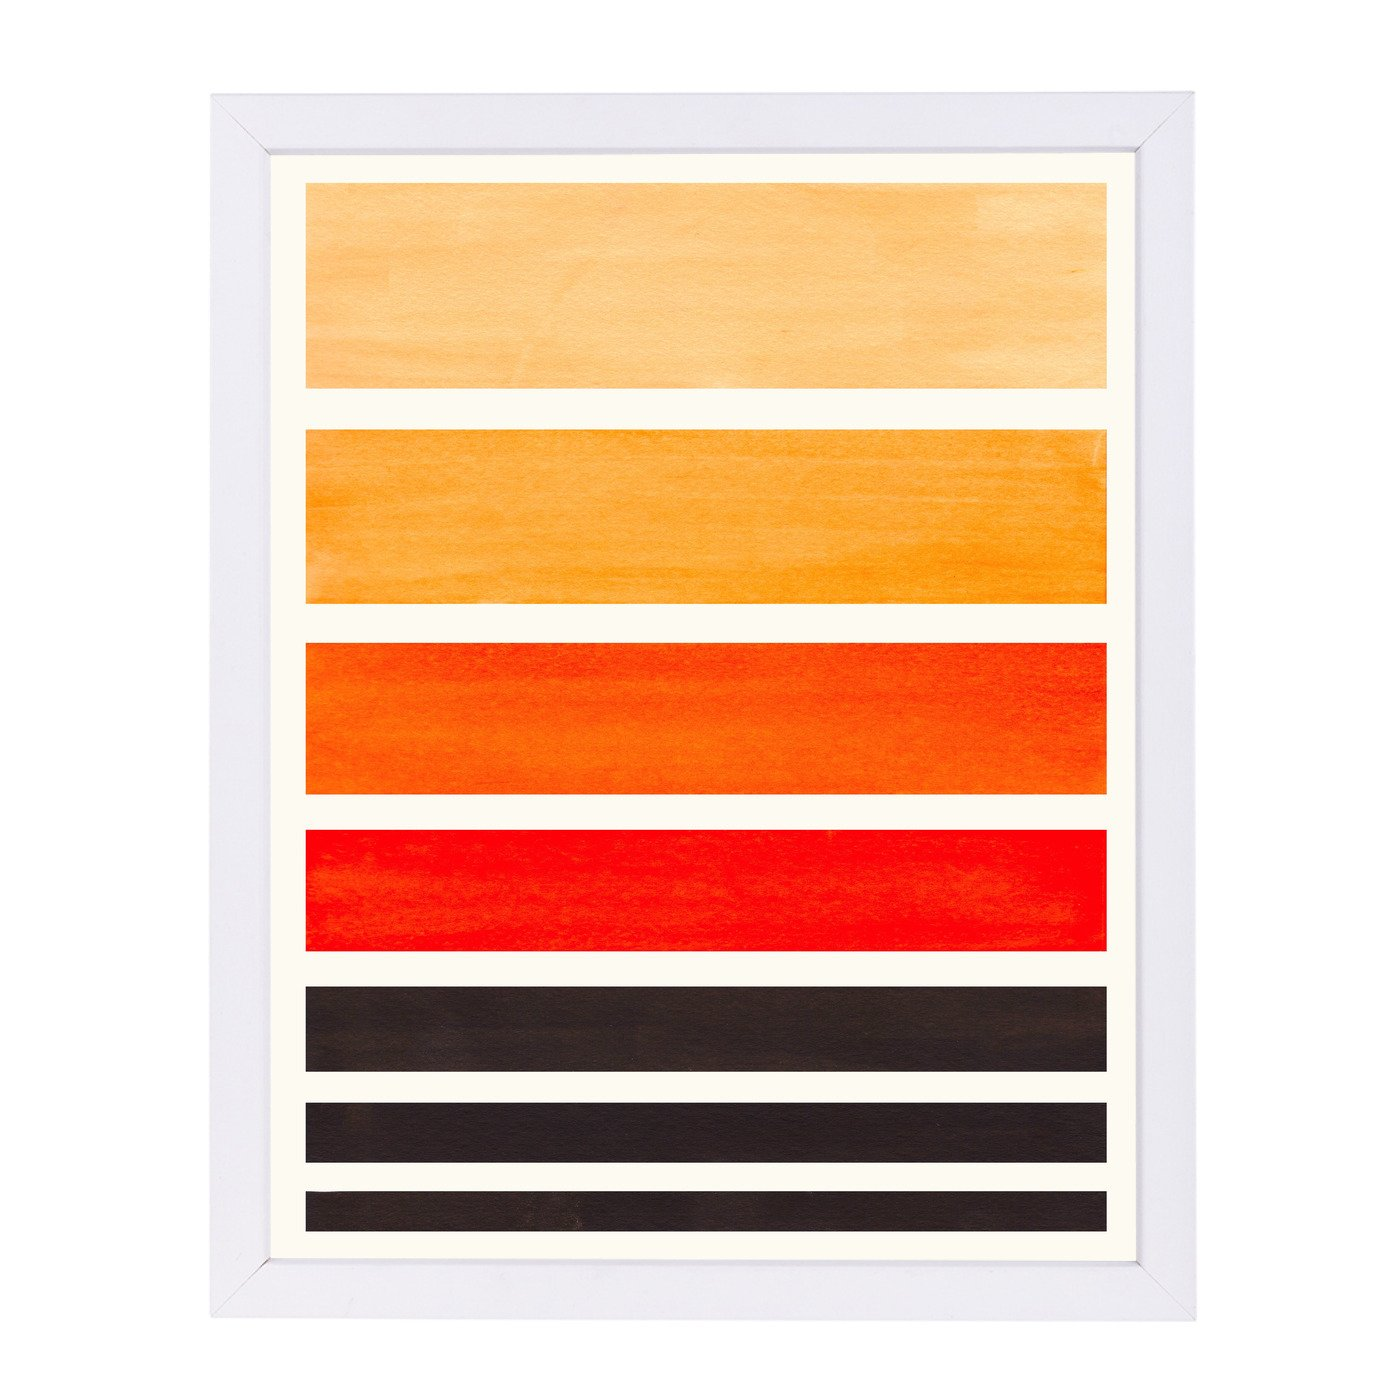 Orange Staggered Stripes By Ejaaz Haniff - Framed Print - Americanflat